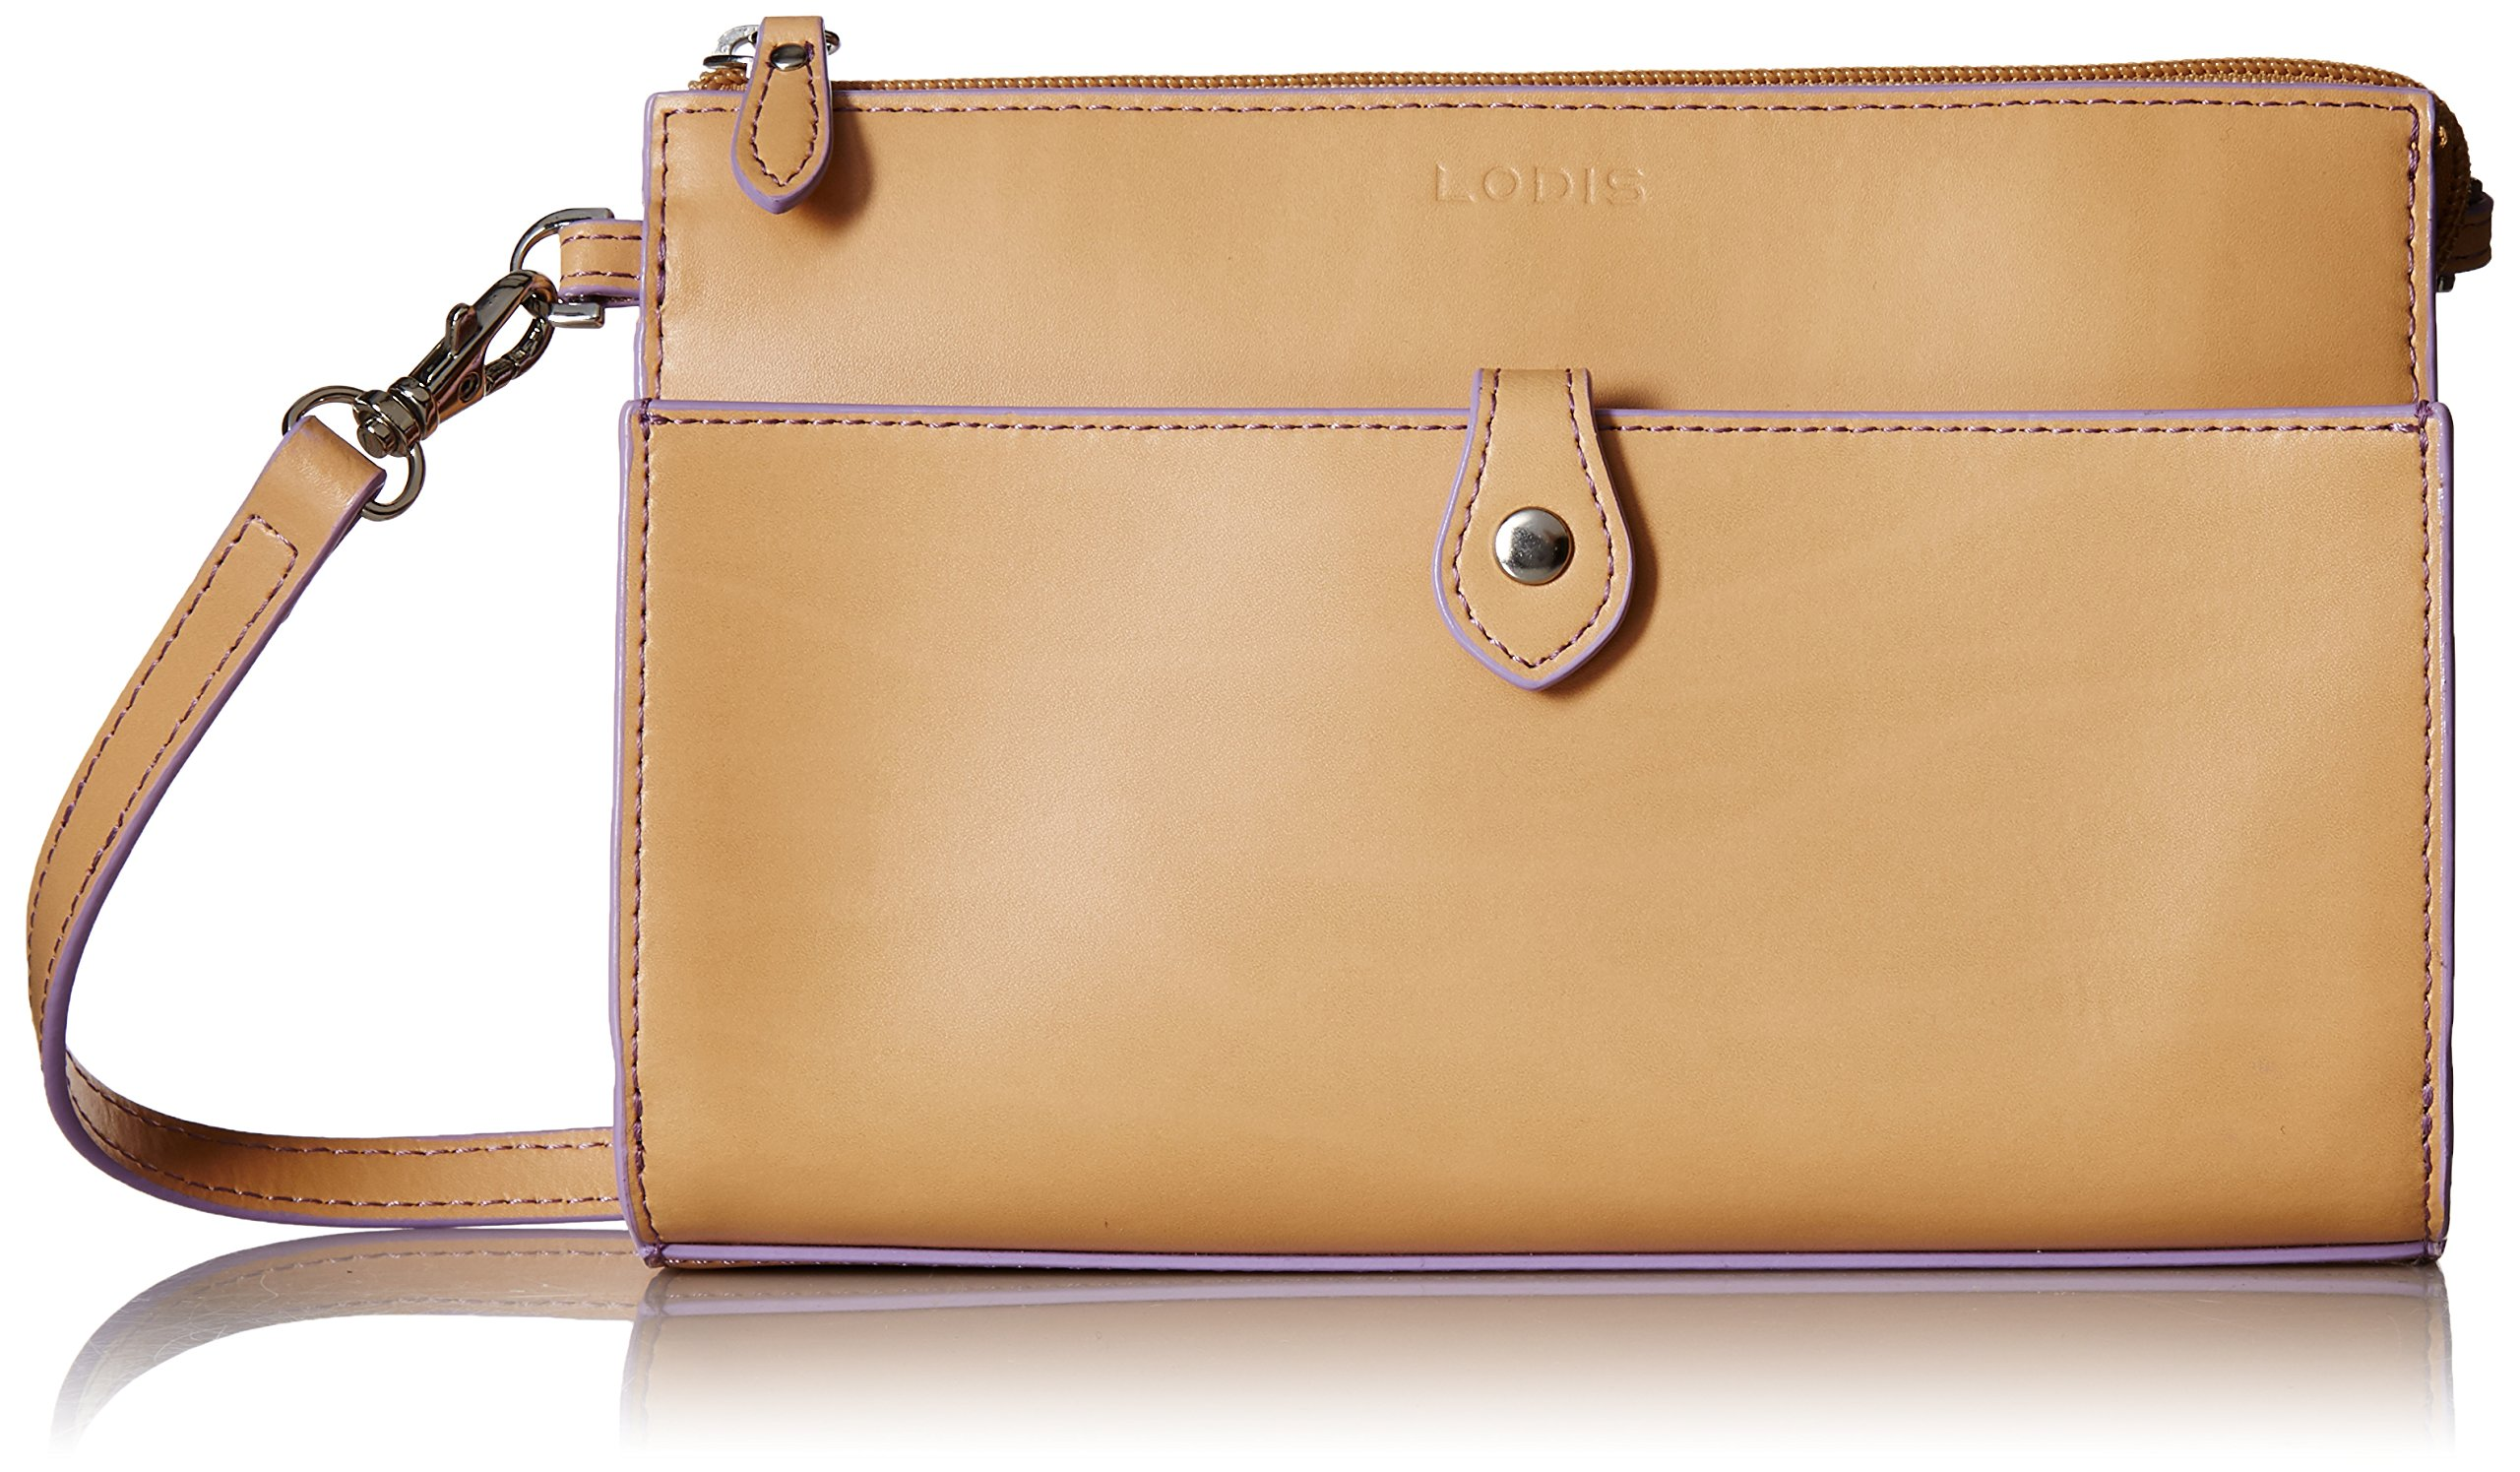 Lodis Audrey Rfid Vicky Convertible Crossbody Clutch, Natural/Lavendar